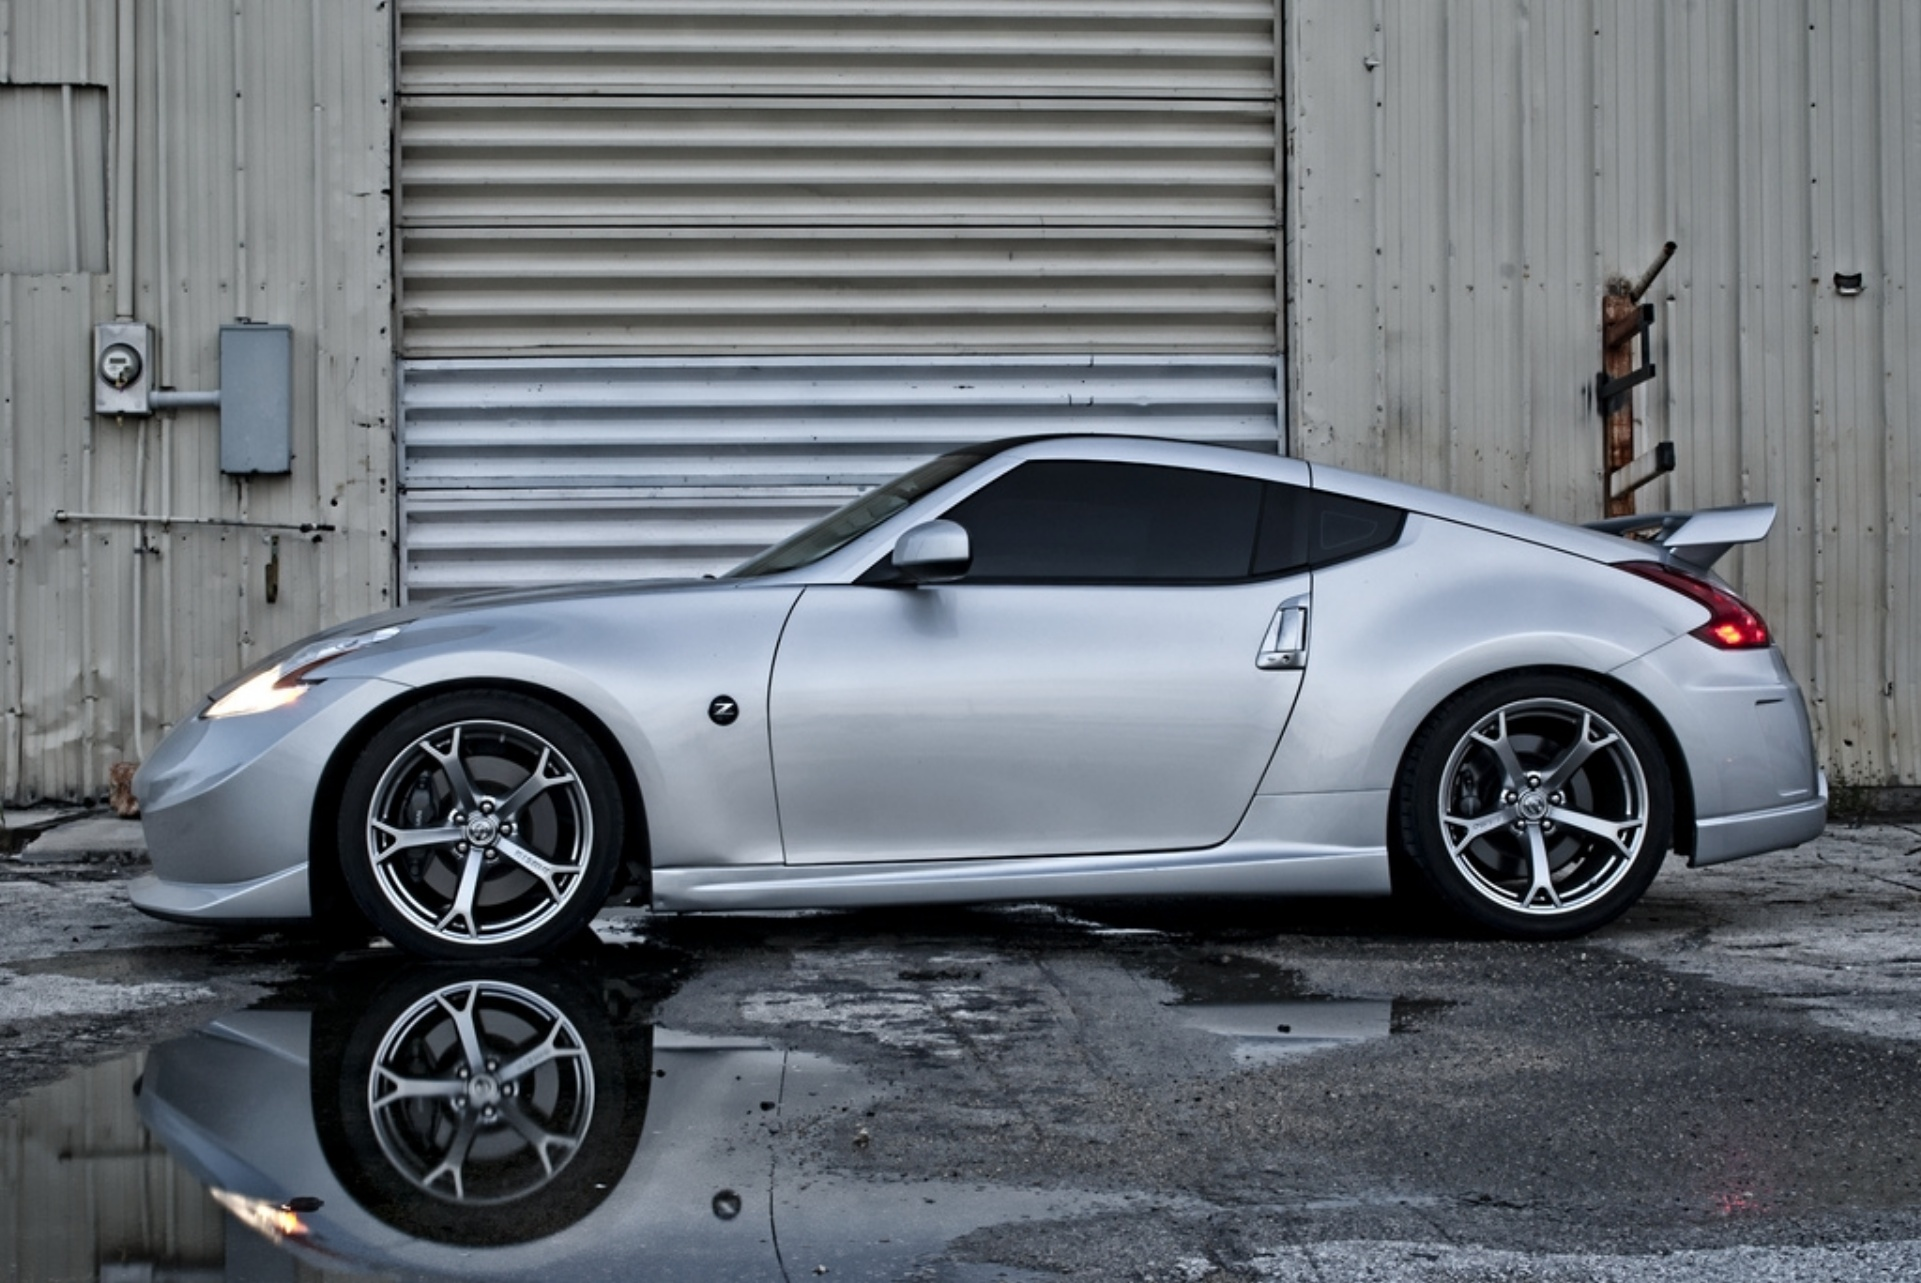 nissan 370z nismo photos 18 on better parts ltd. Black Bedroom Furniture Sets. Home Design Ideas